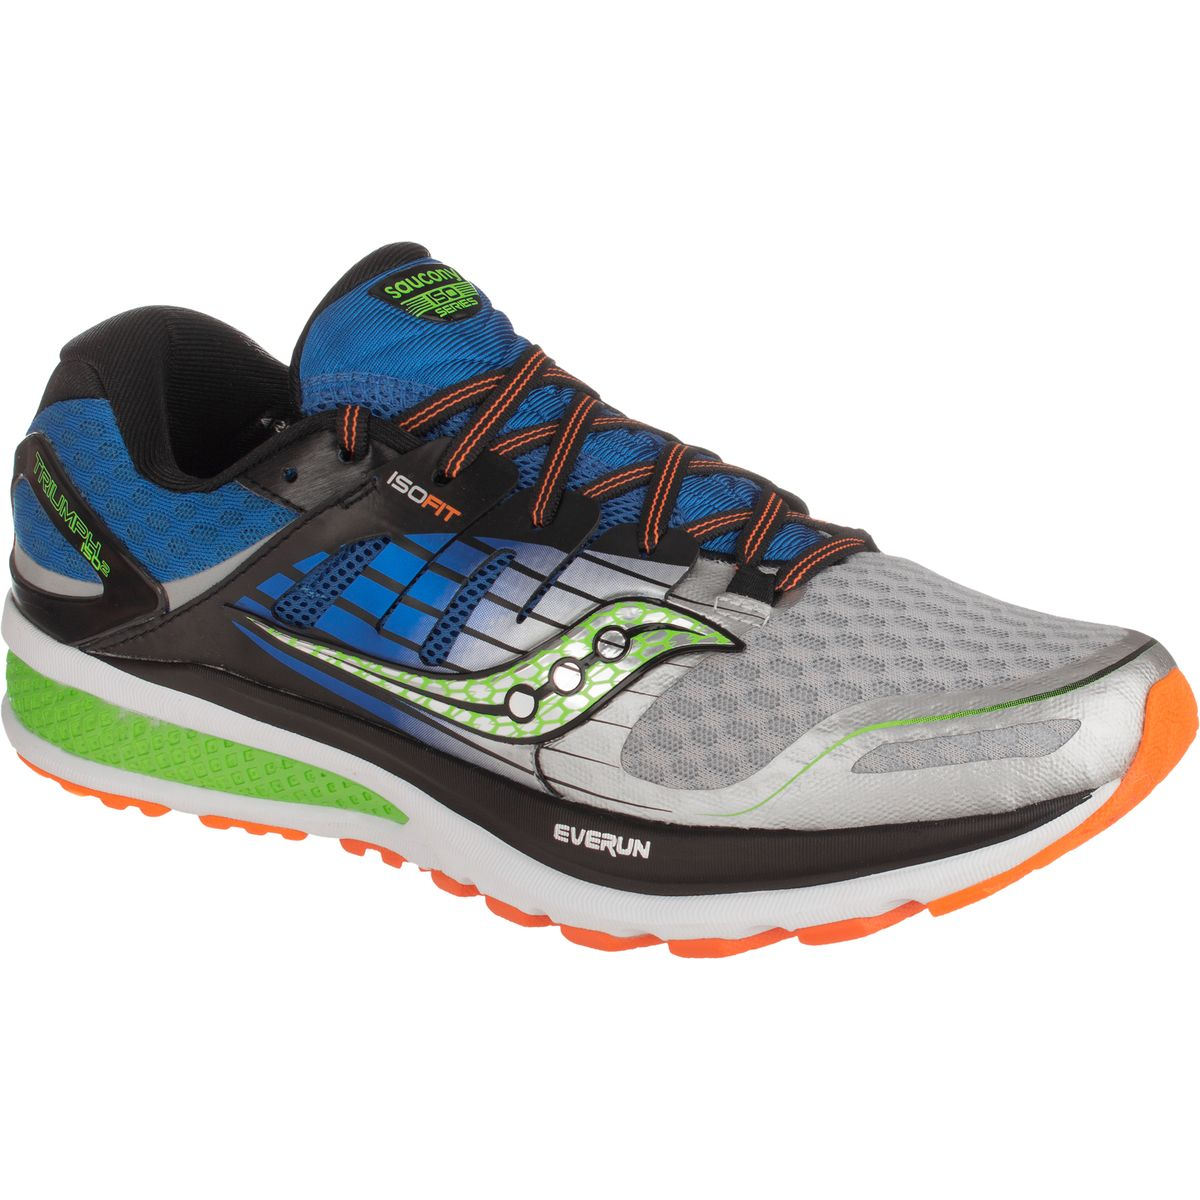 Shop clearance running shoes from DICK'S Sporting Goods. Browse all discount running shoes on sale from Nike, Asics and more top-rated brands for men, women and kids.